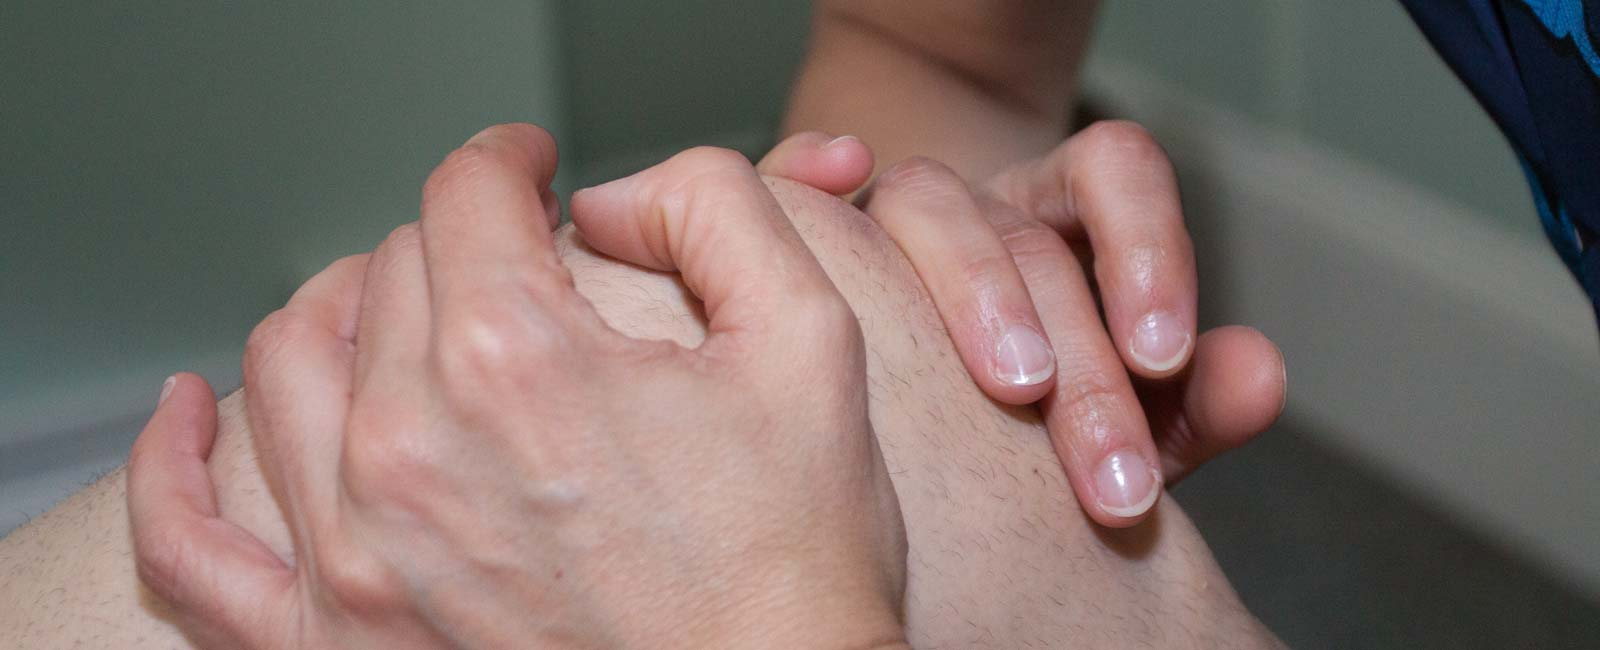 Tailored chiropractic care to relieve joint pain